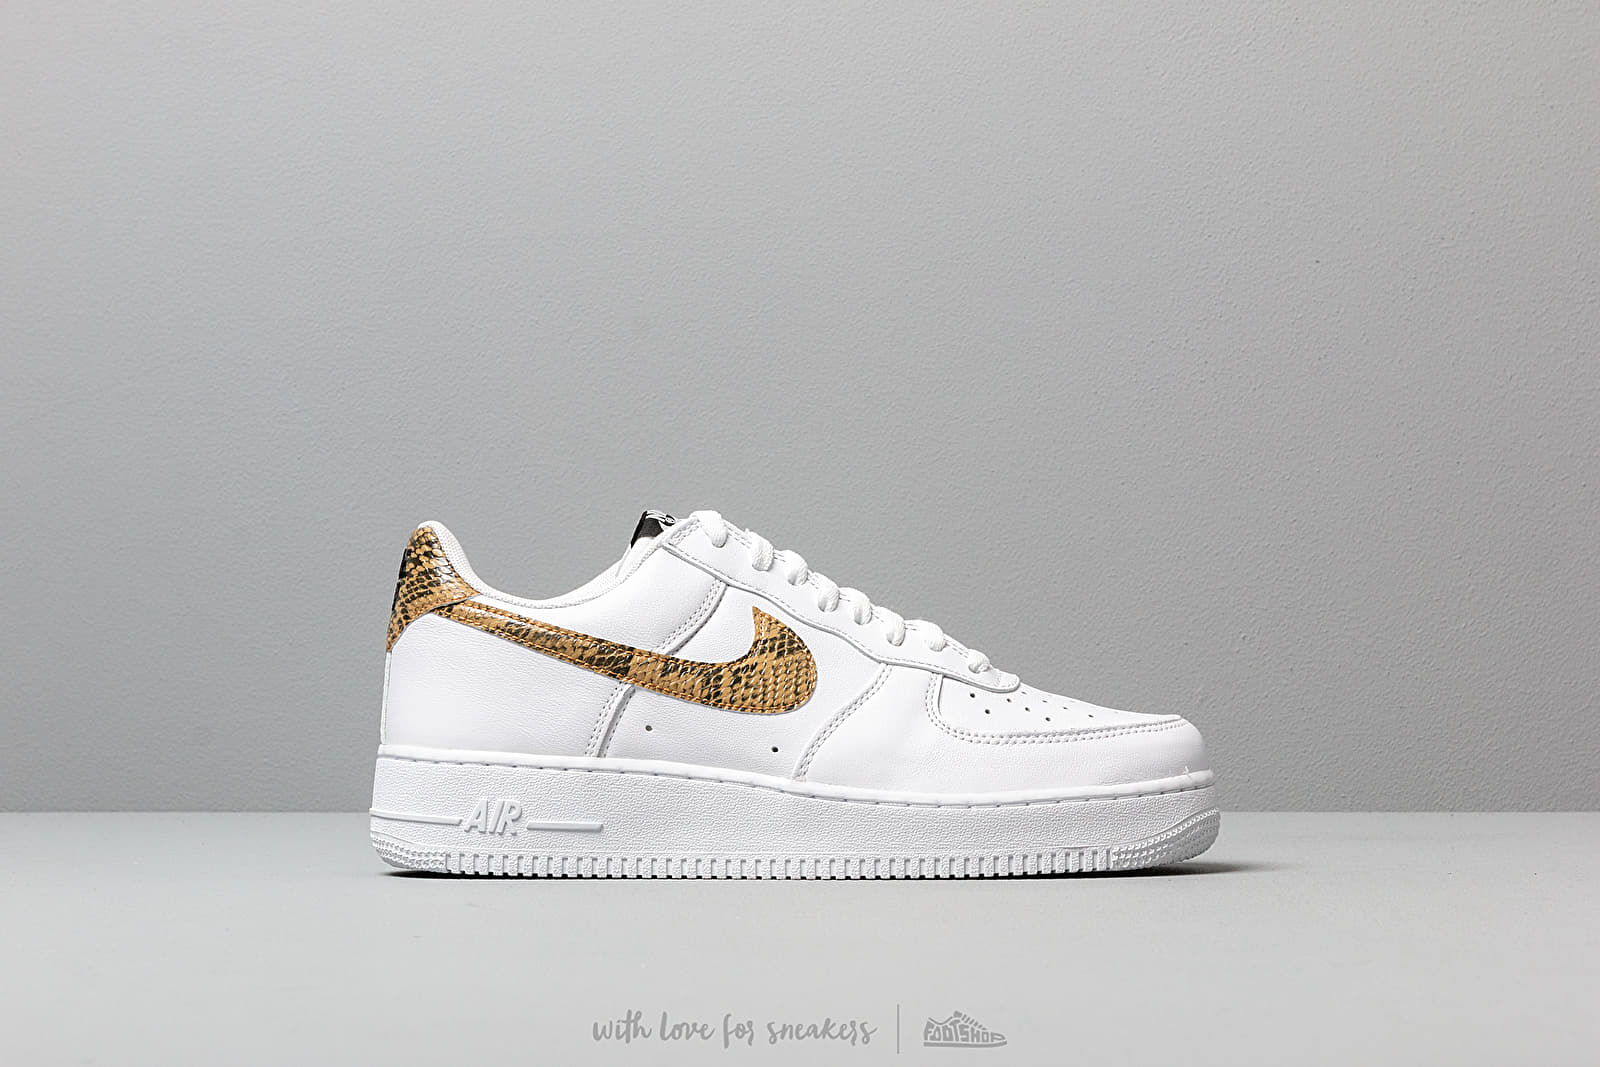 official site 2018 shoes lace up in Nike Air Force 1 Low Retro Premium QS White/ Elemental Gold ...